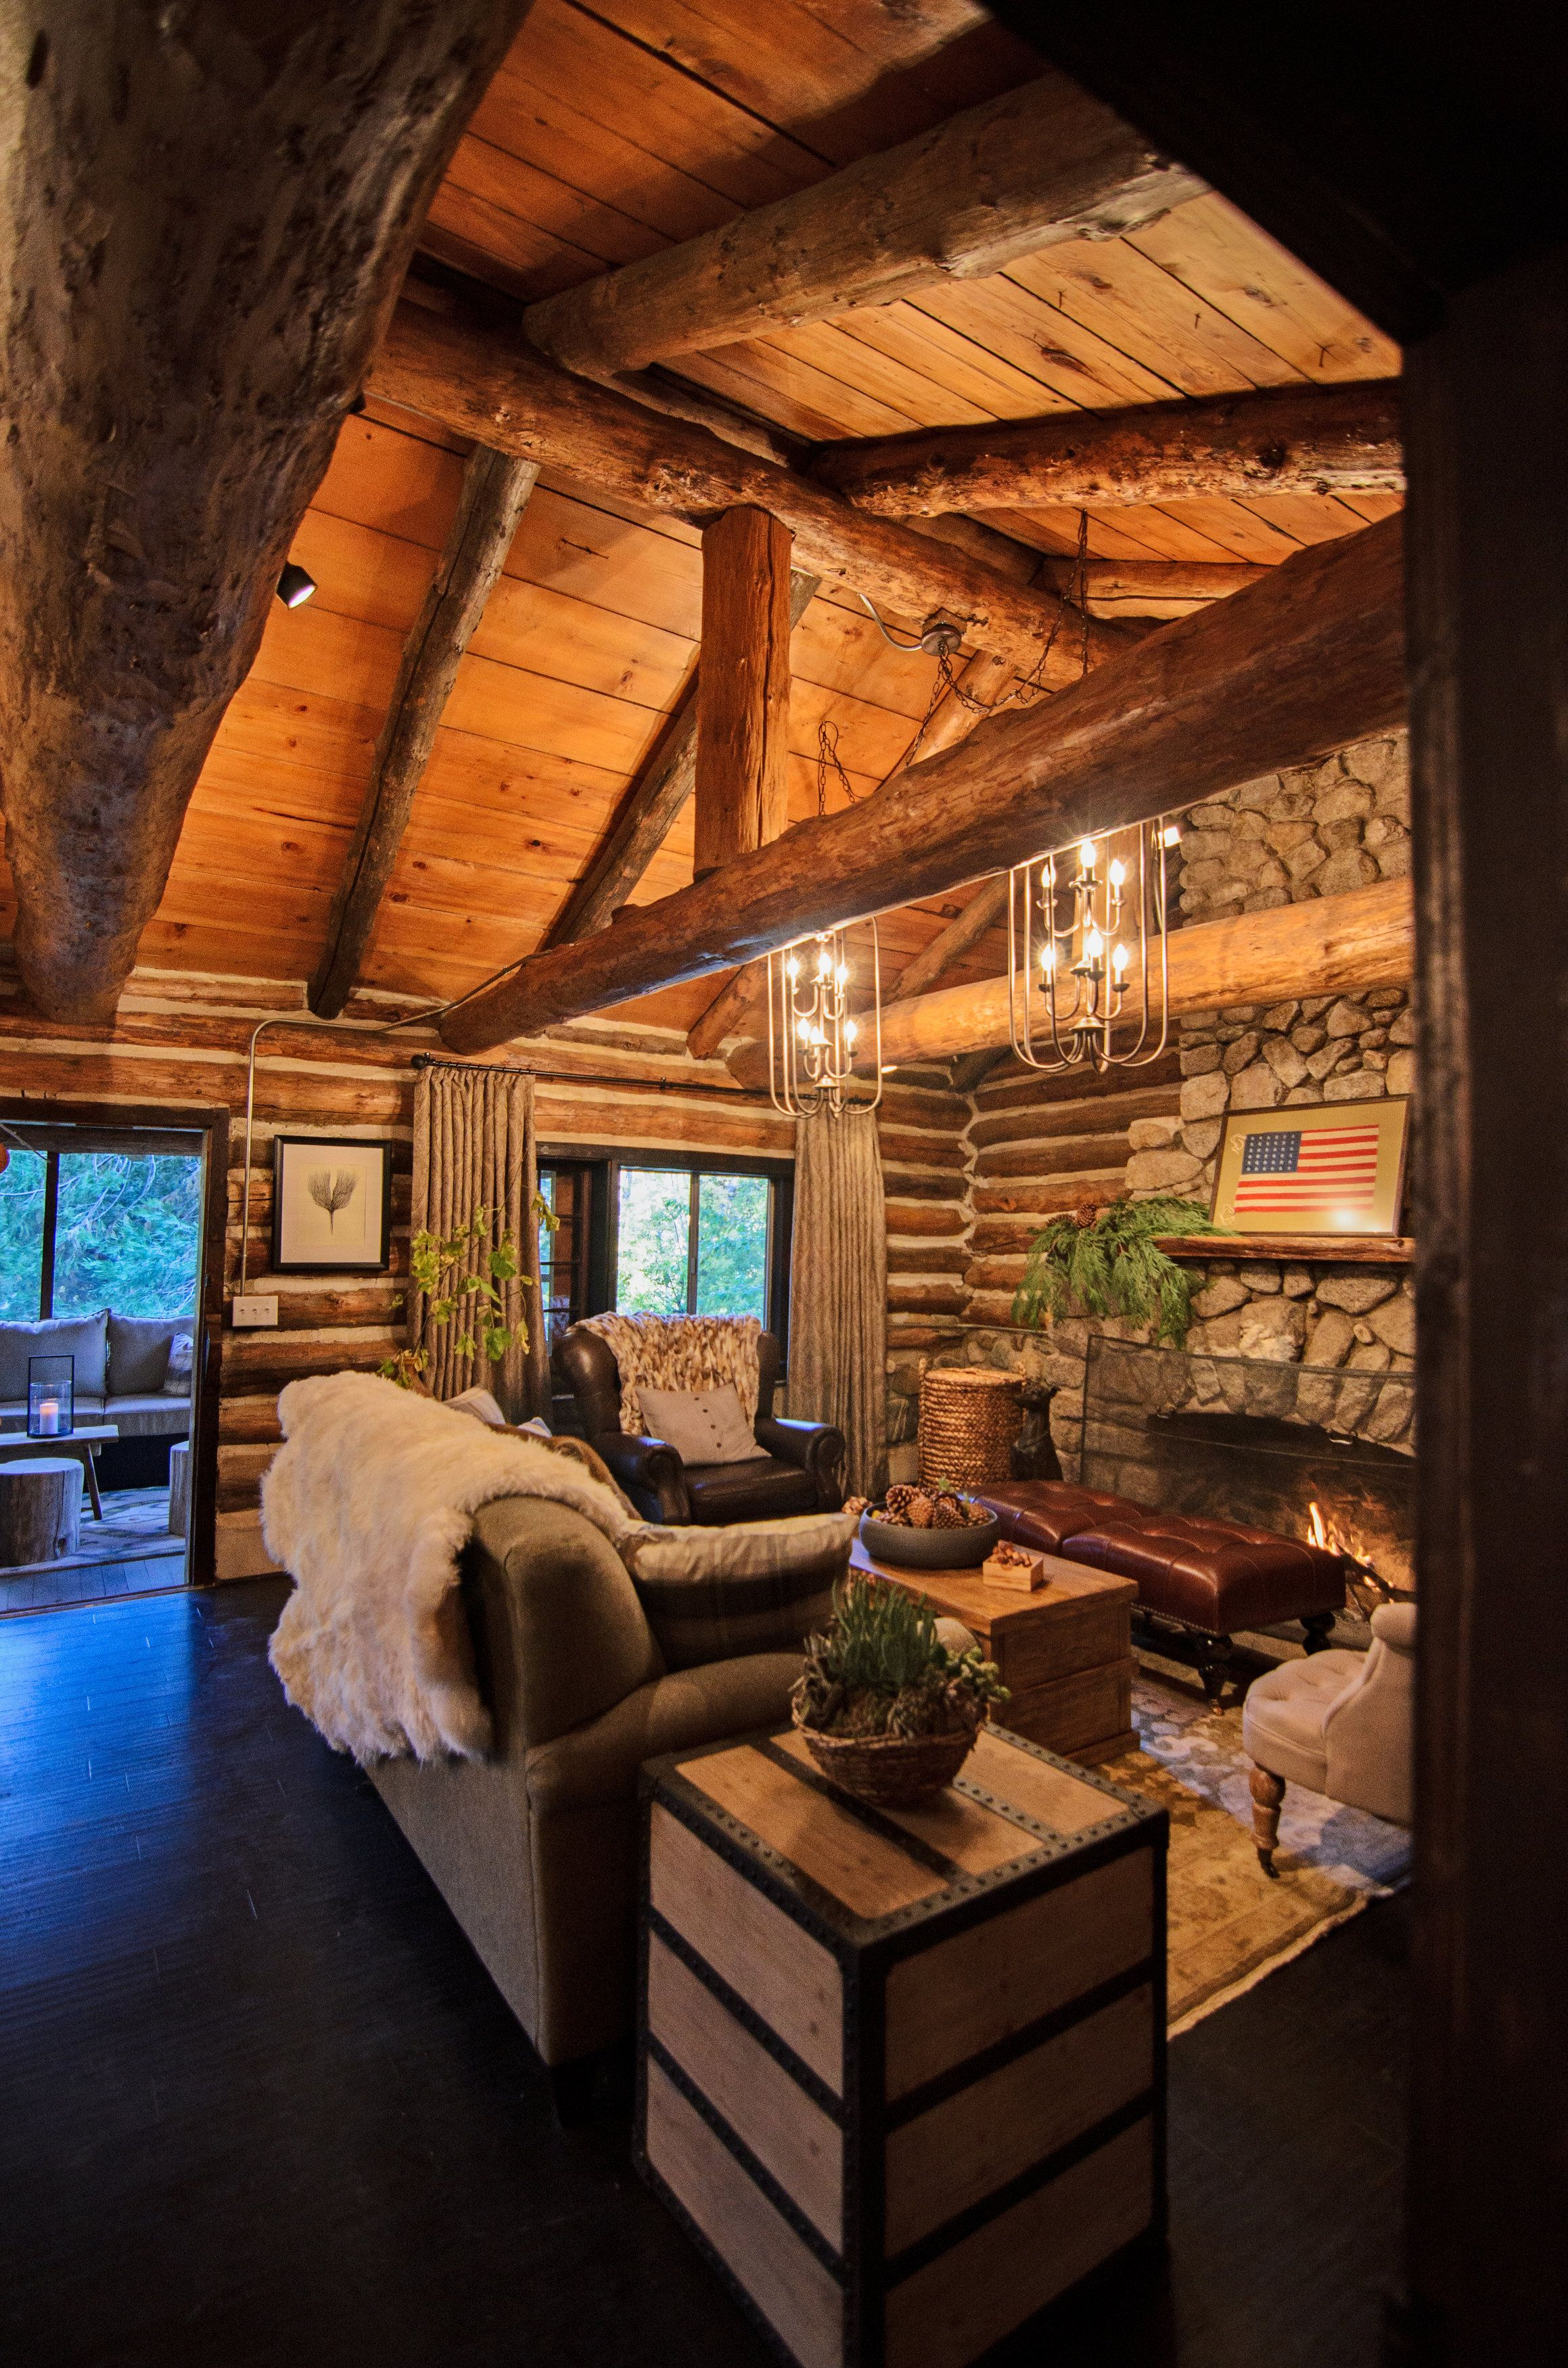 Beautiful cabins interior - Find This Pin And More On Log Cabin Homes Beautiful